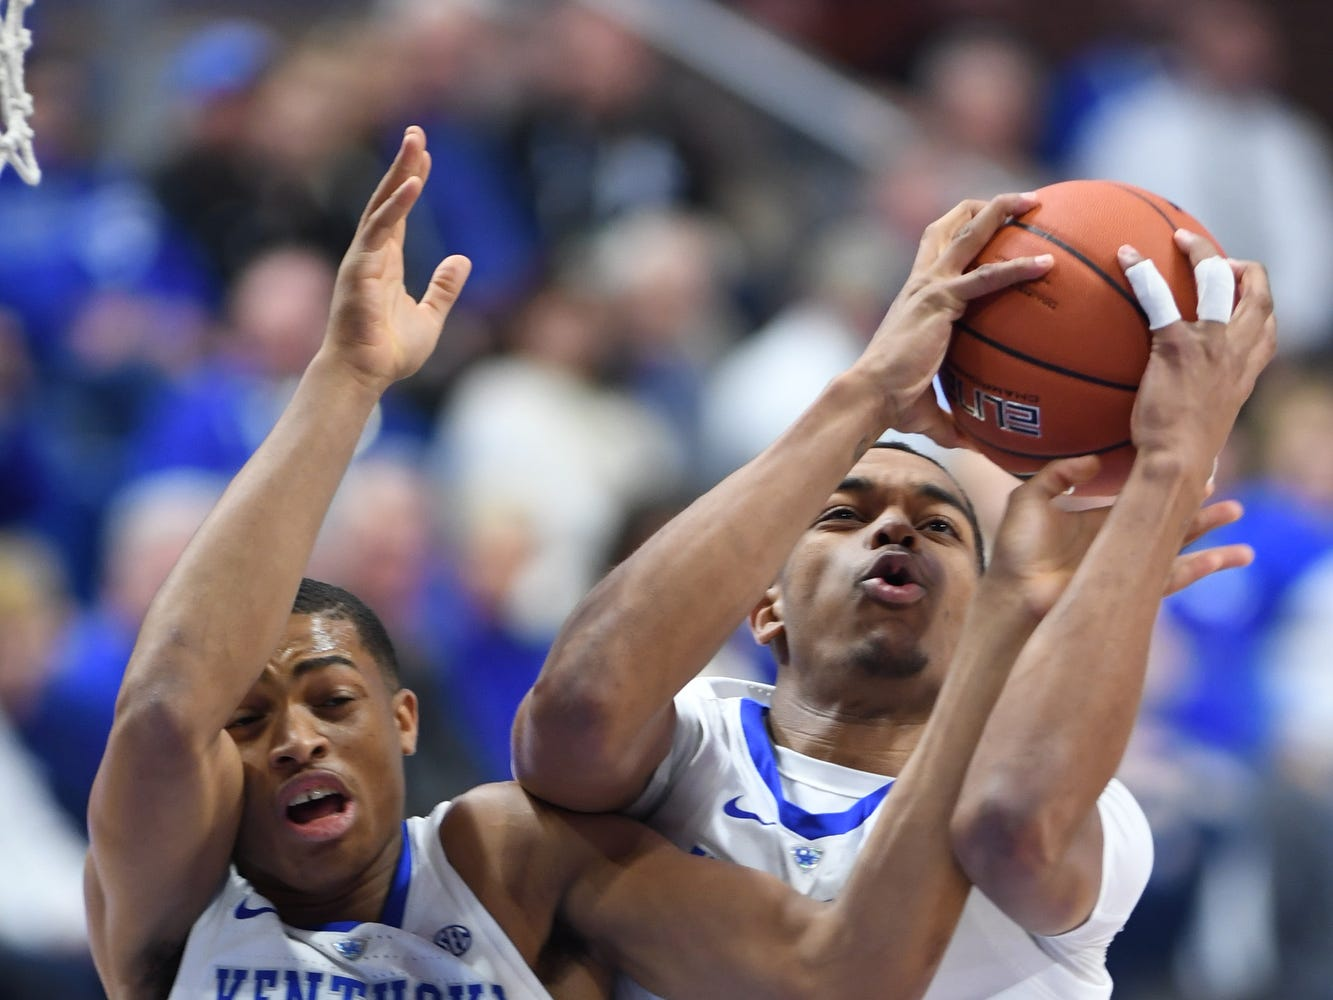 UK F PJ Washington grabs a rebound during the University of Kentucky mens basketball game against Southern Illinois at Rupp Arena in Lexington, Kentucky on Friday, November 9, 2018.